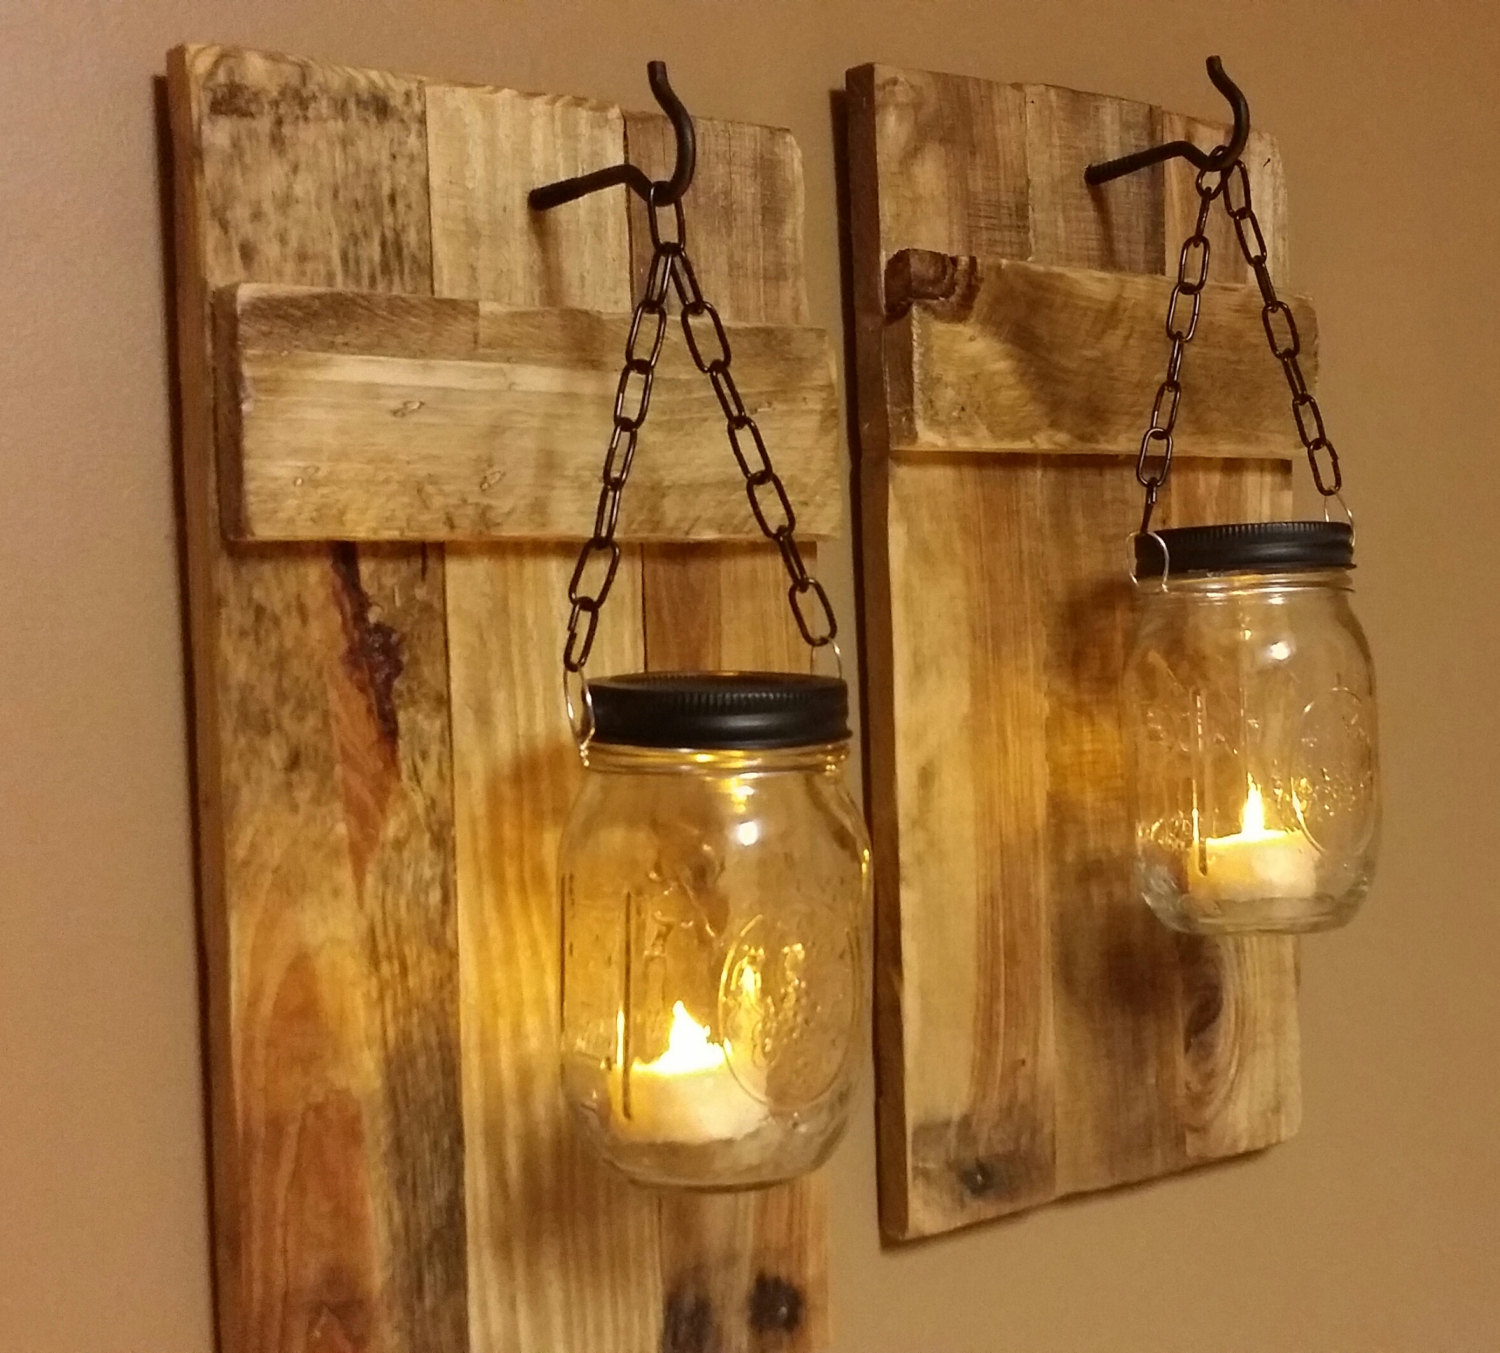 diy mason jar sconce making tutorial mason jar crafts